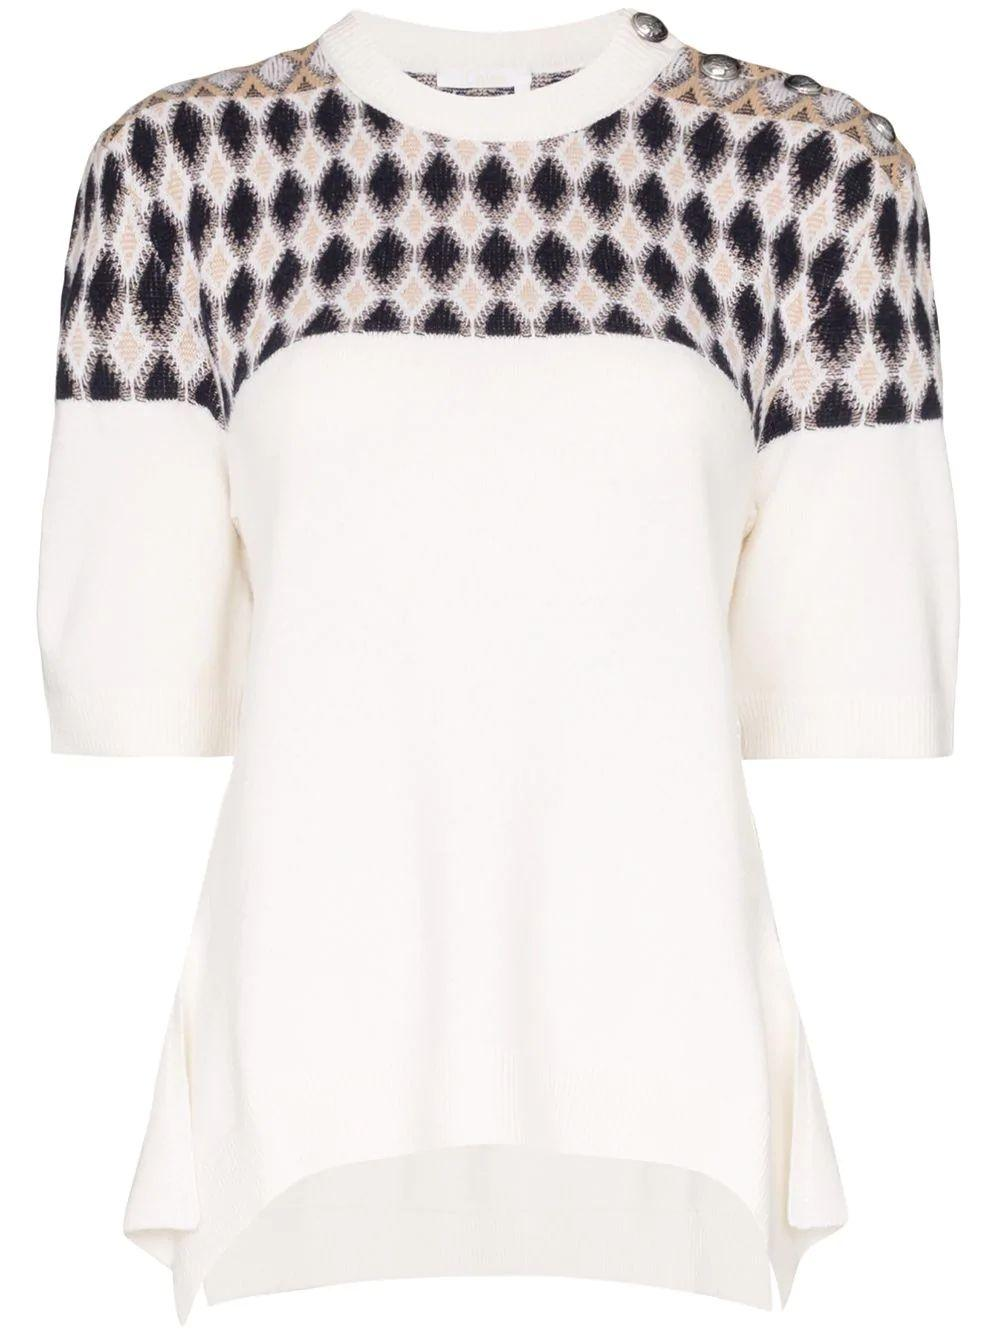 Elbow Sleeve Argyle Jacquard Knit Top